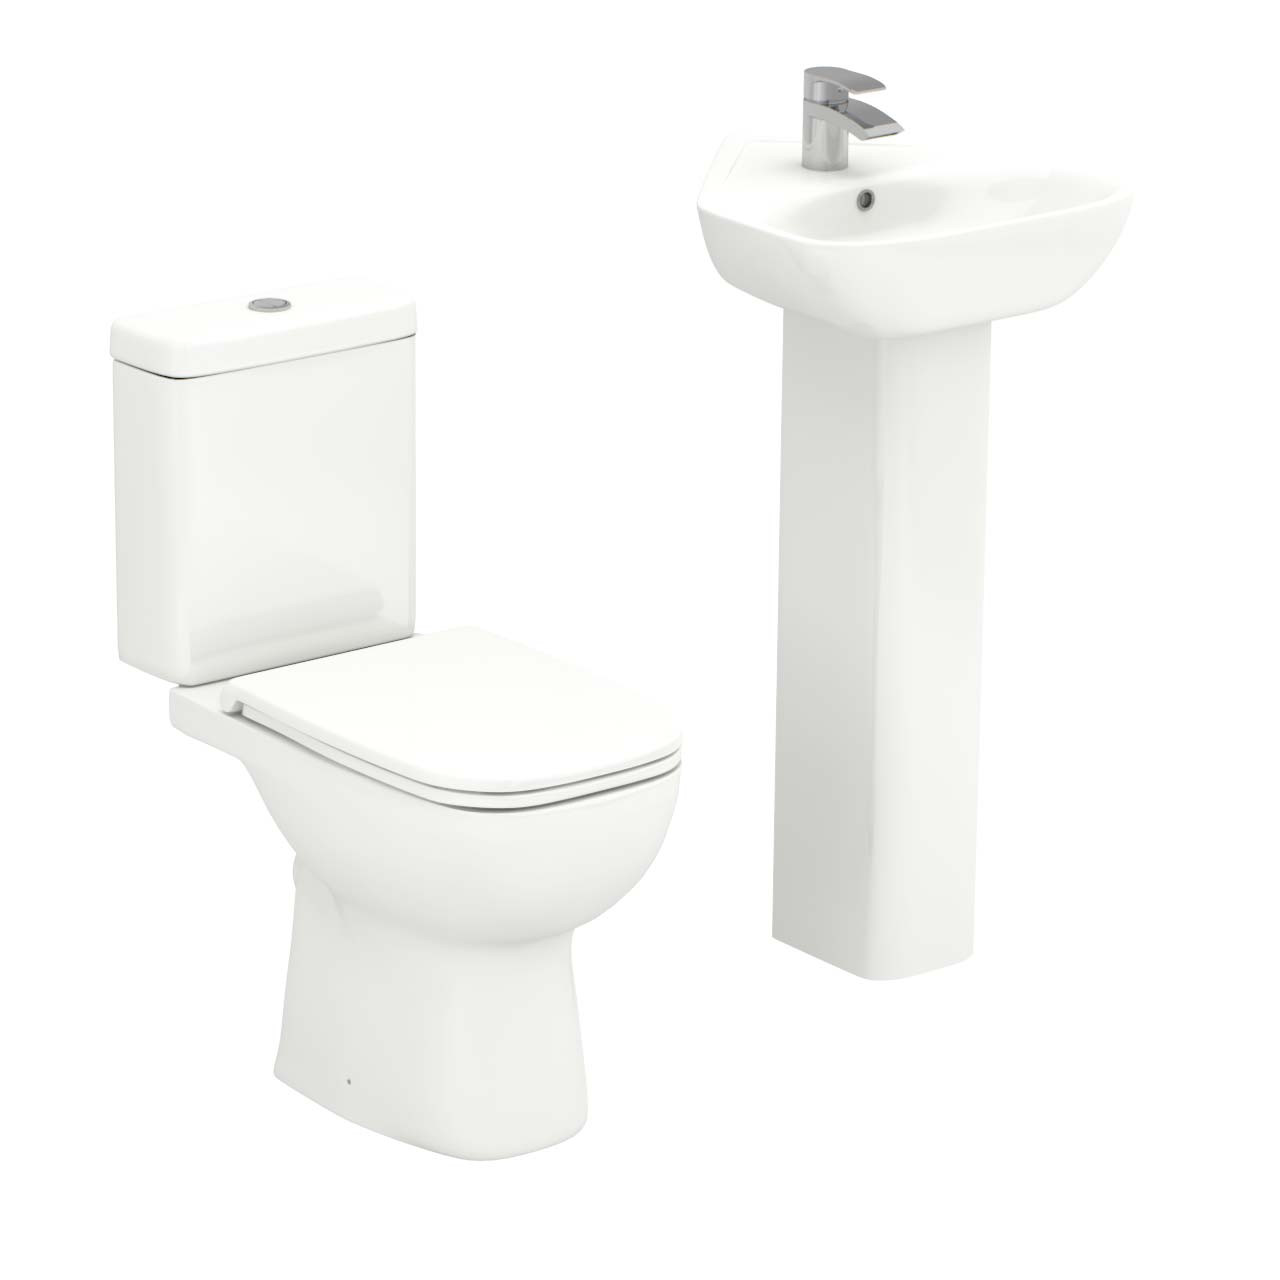 Forth Corner Full Pedestal Basin Amp Toilet Suite